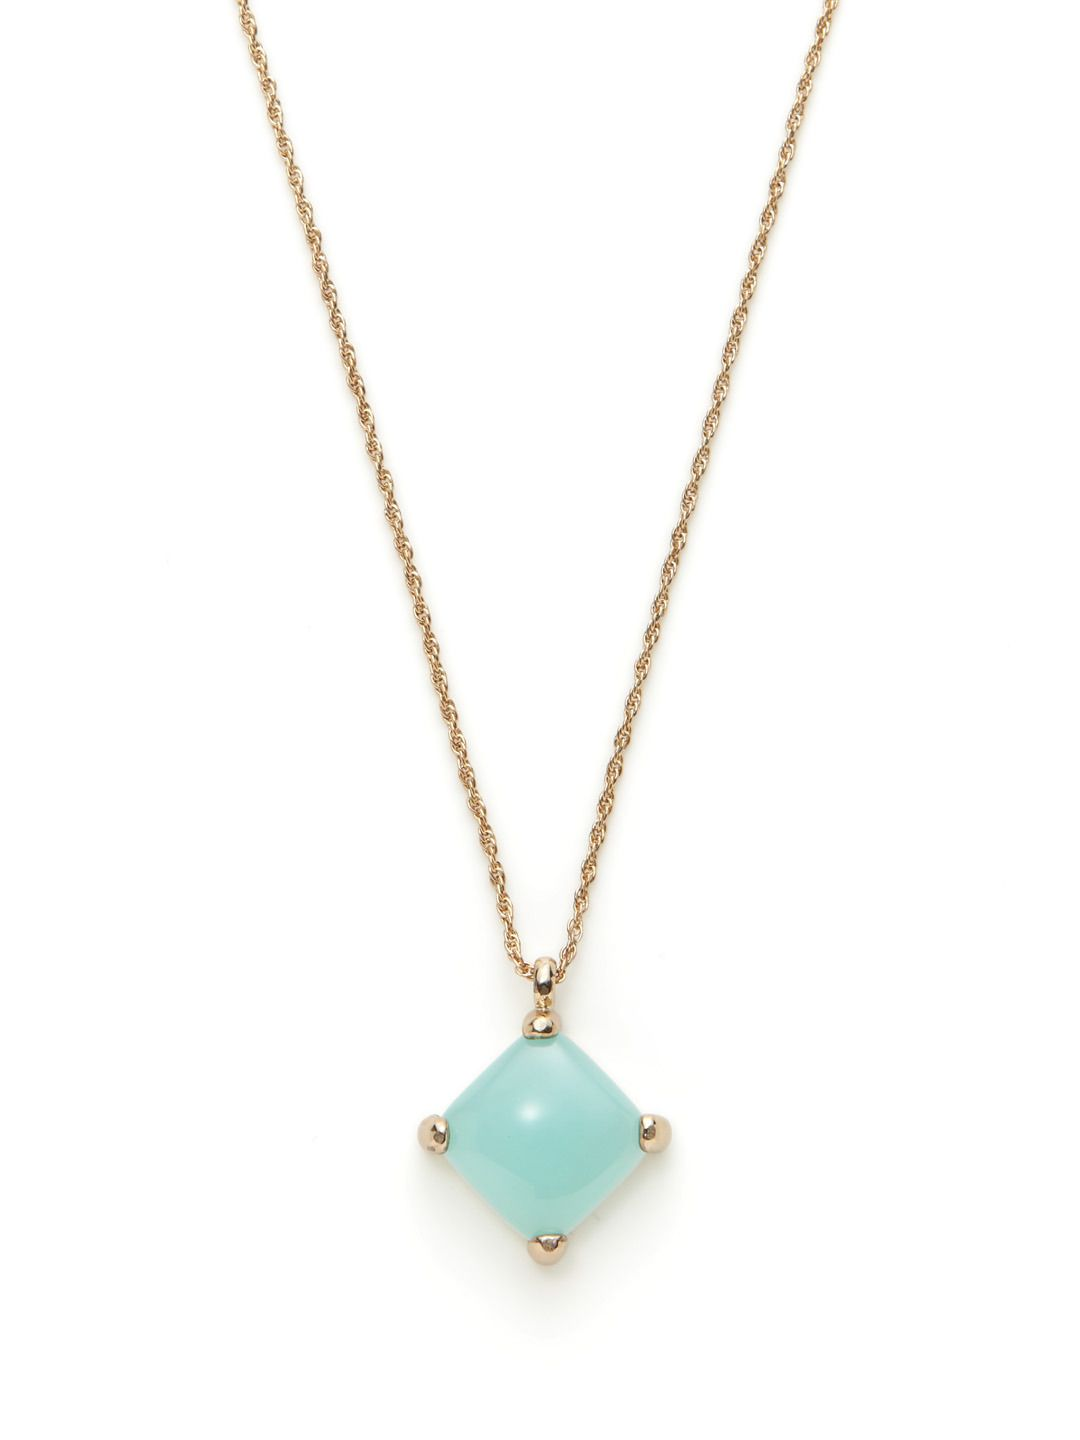 Portia tilted square pendant necklace jewelry womenus fashion